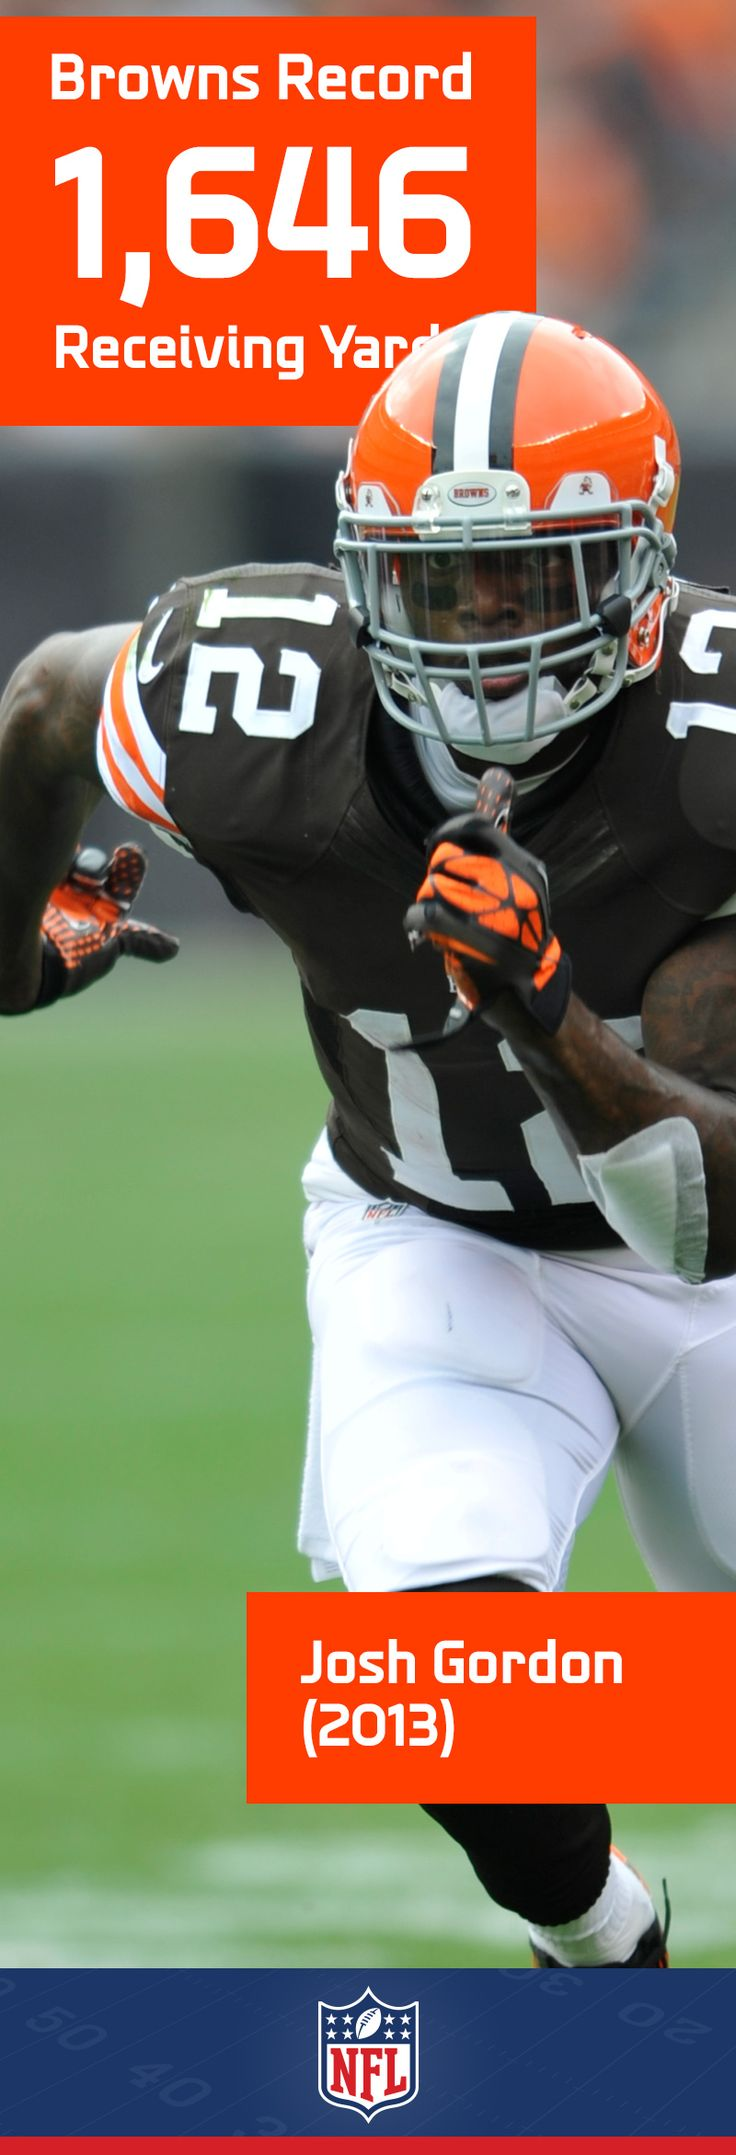 Wide receiver Josh Gordon set a Cleveland Browns record in 2013 with his outstanding 1,646 yard performance.